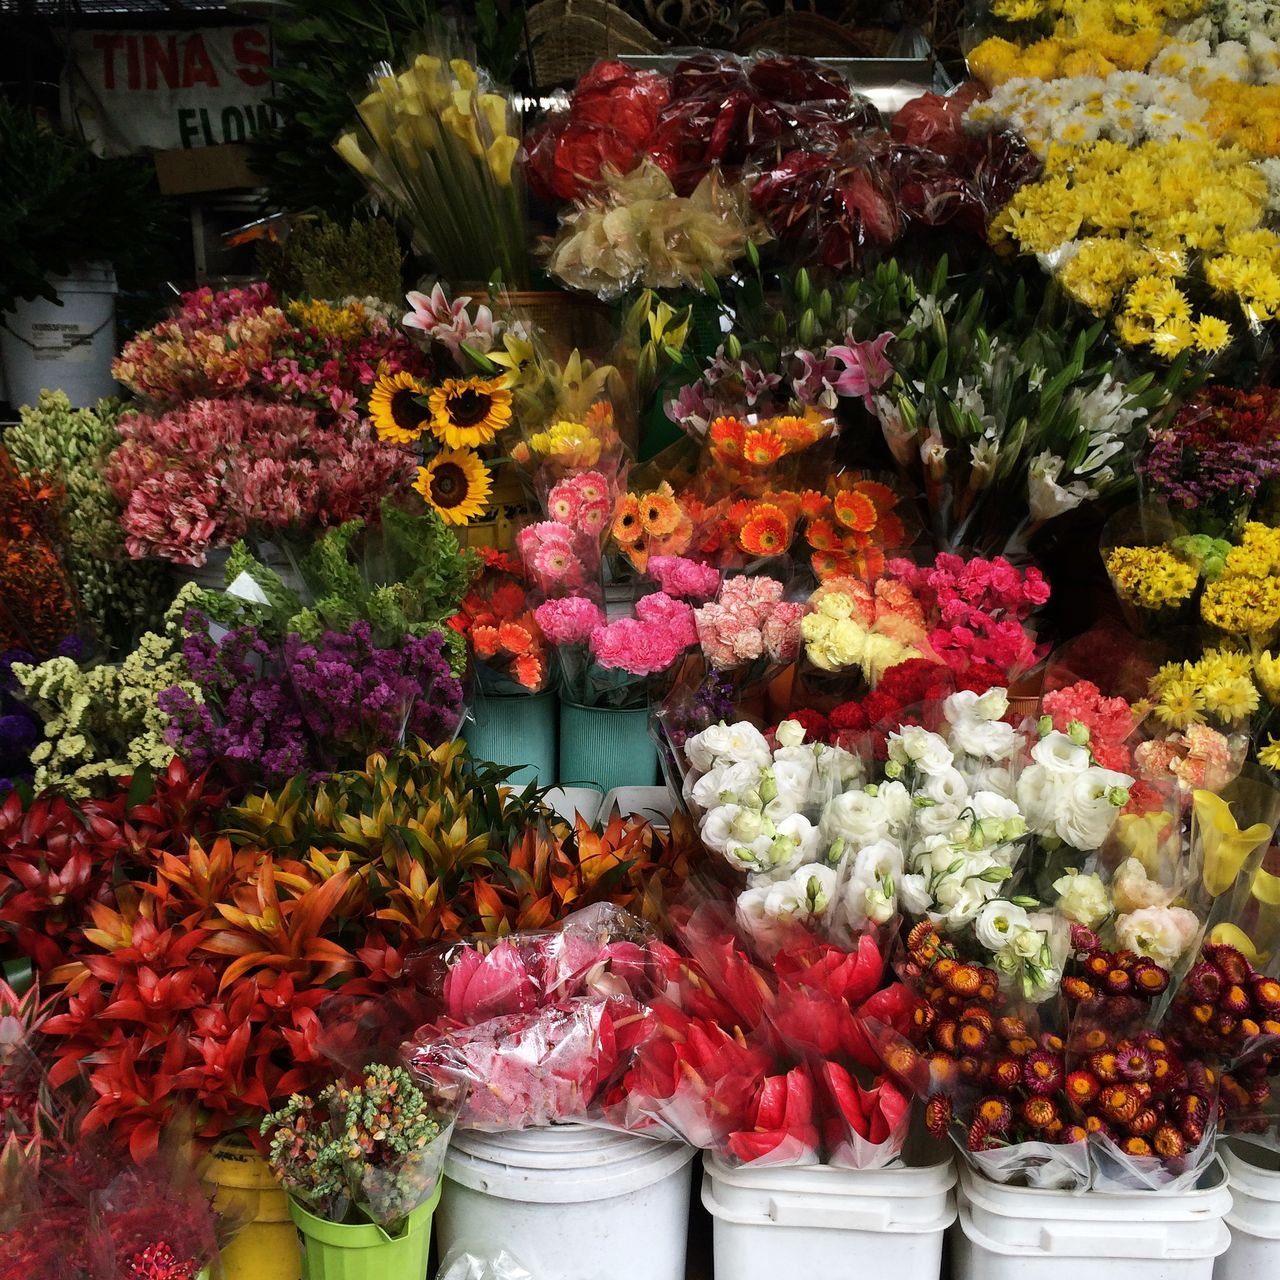 Multi colored flowers for sale in market